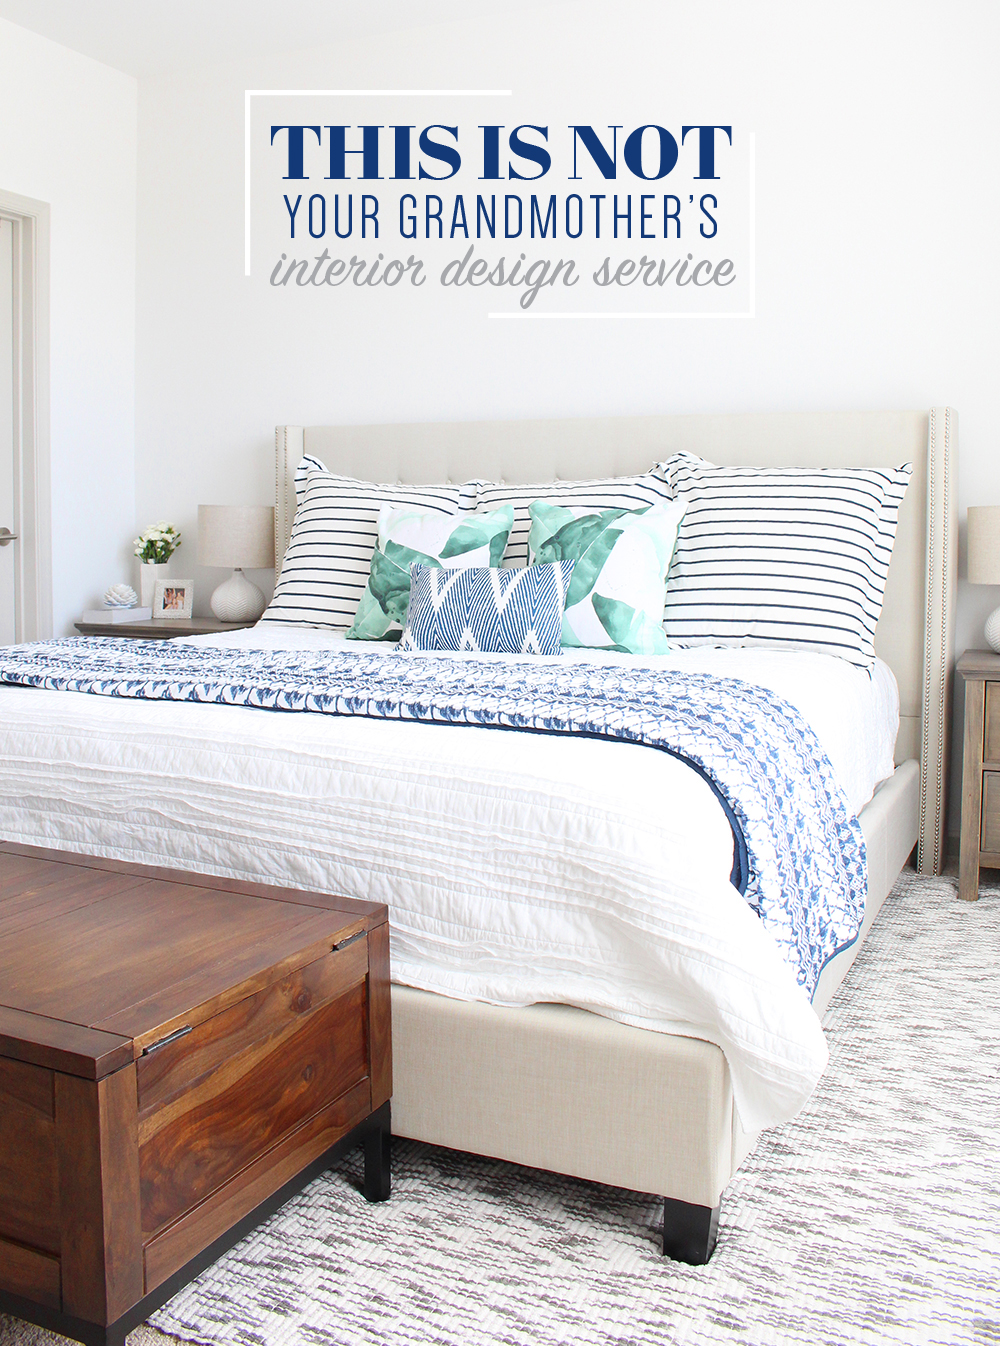 This Is Not Your Grandmother's Interior Design Service — Mix